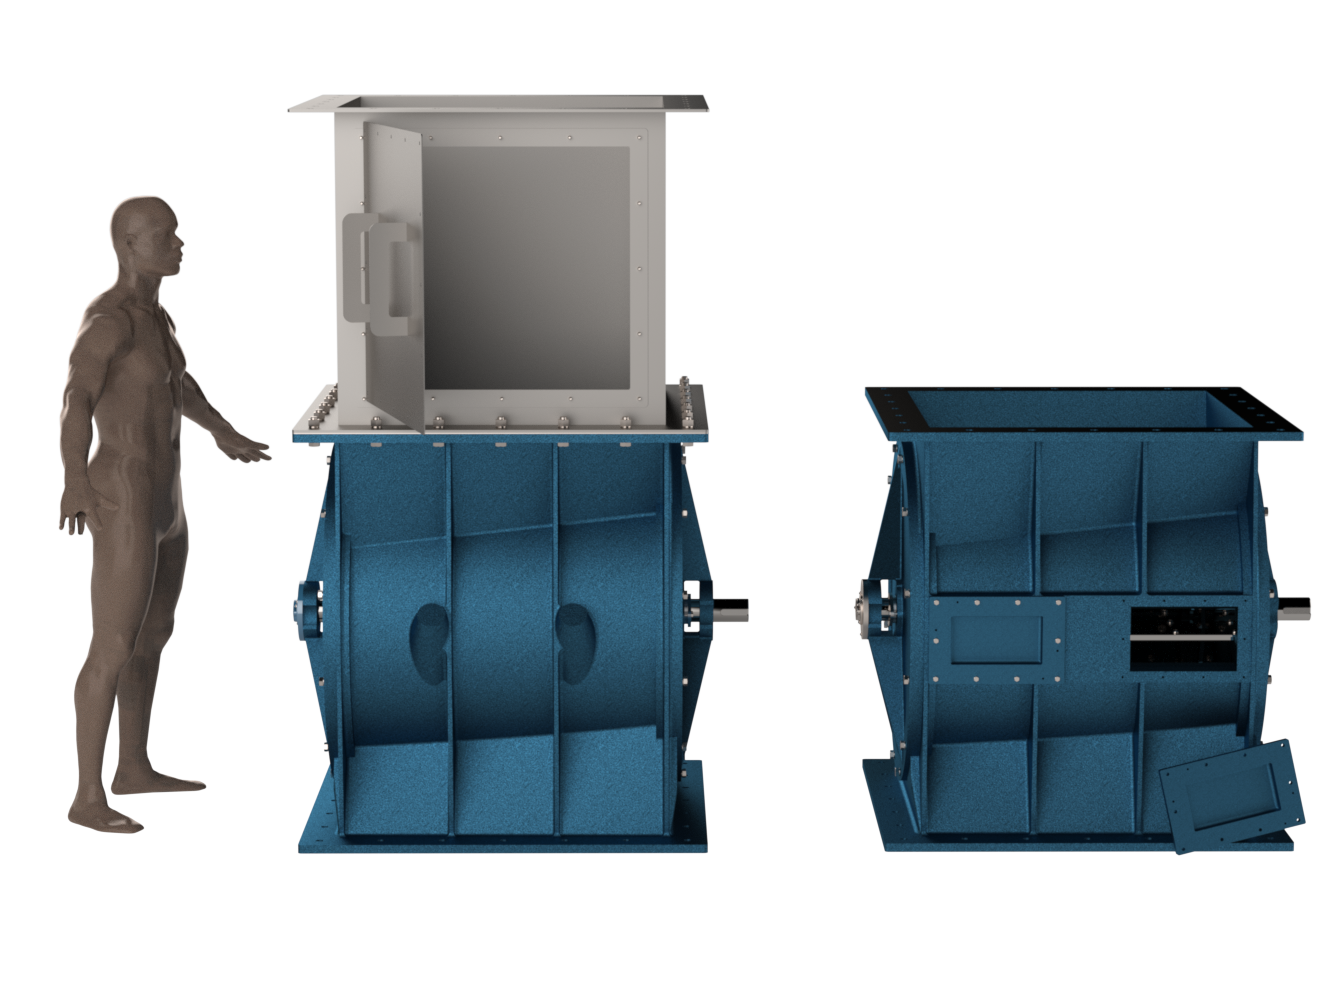 3D model of existing and proposed